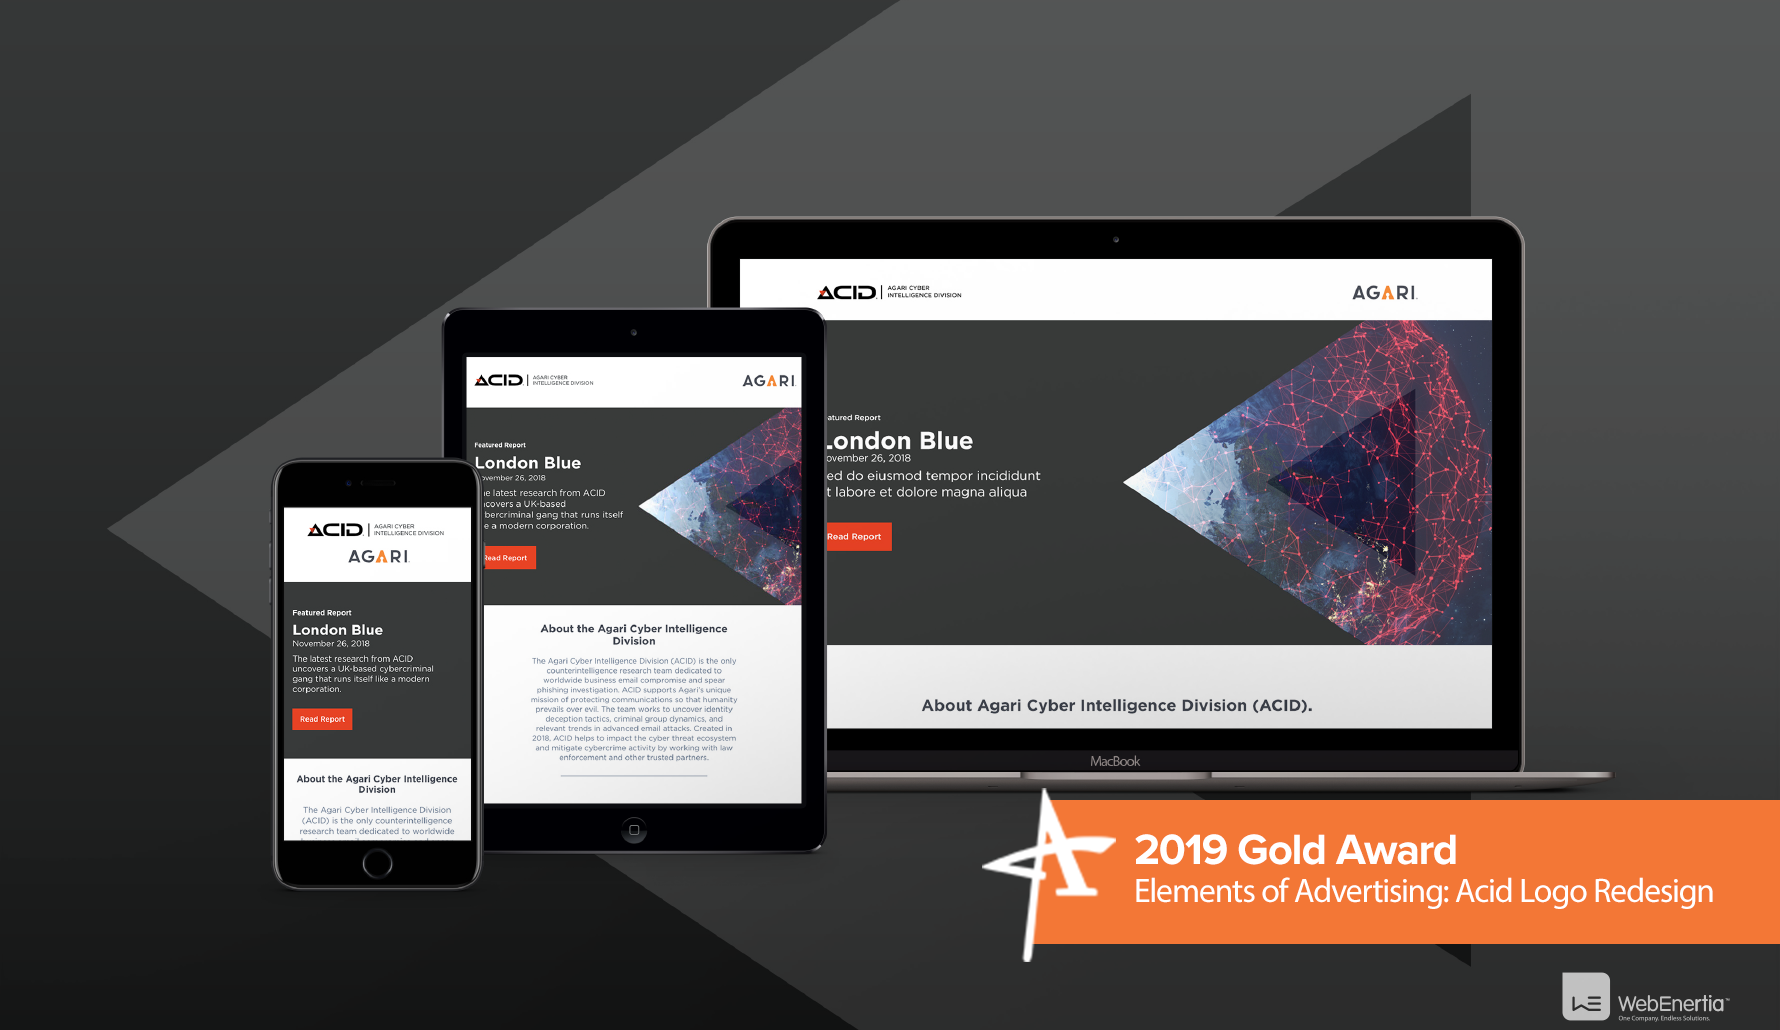 2019 Gold Addy Award - Elements of Advertising: Acid Logo Redesign